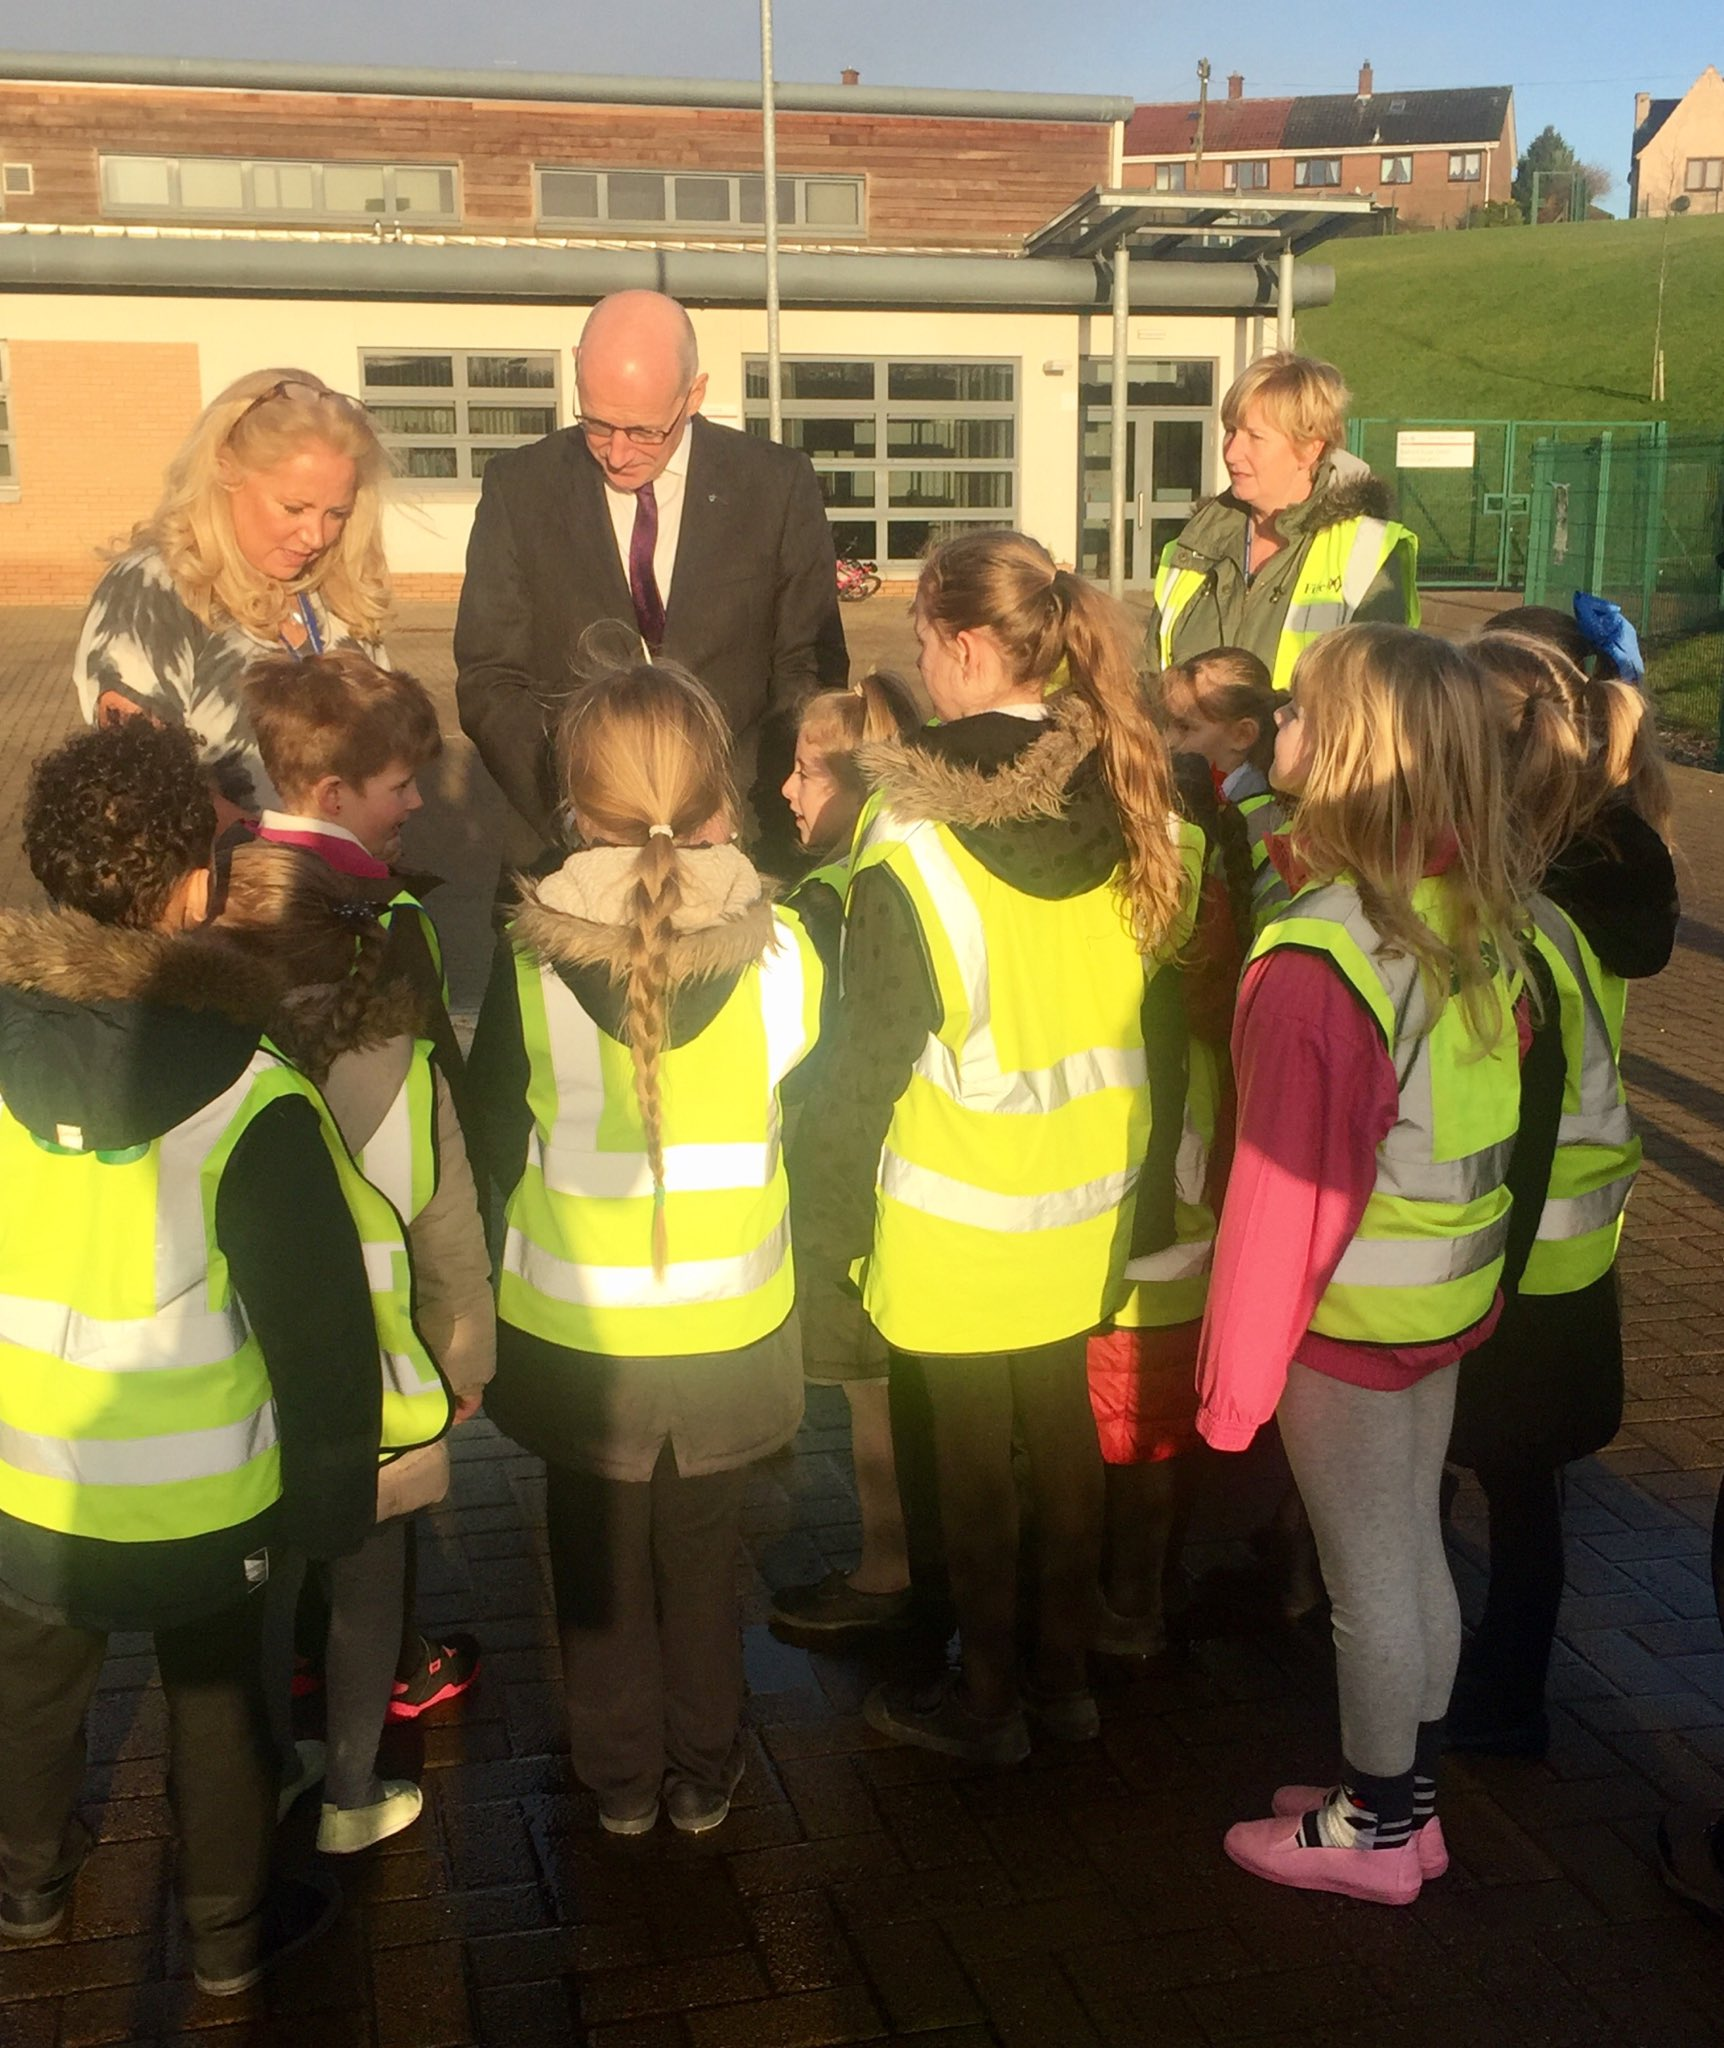 This morning @JohnSwinney met with some @InzievarPS pupils to find out how their walking bus is helping to improve attainment https://t.co/FFoTCN3dHm